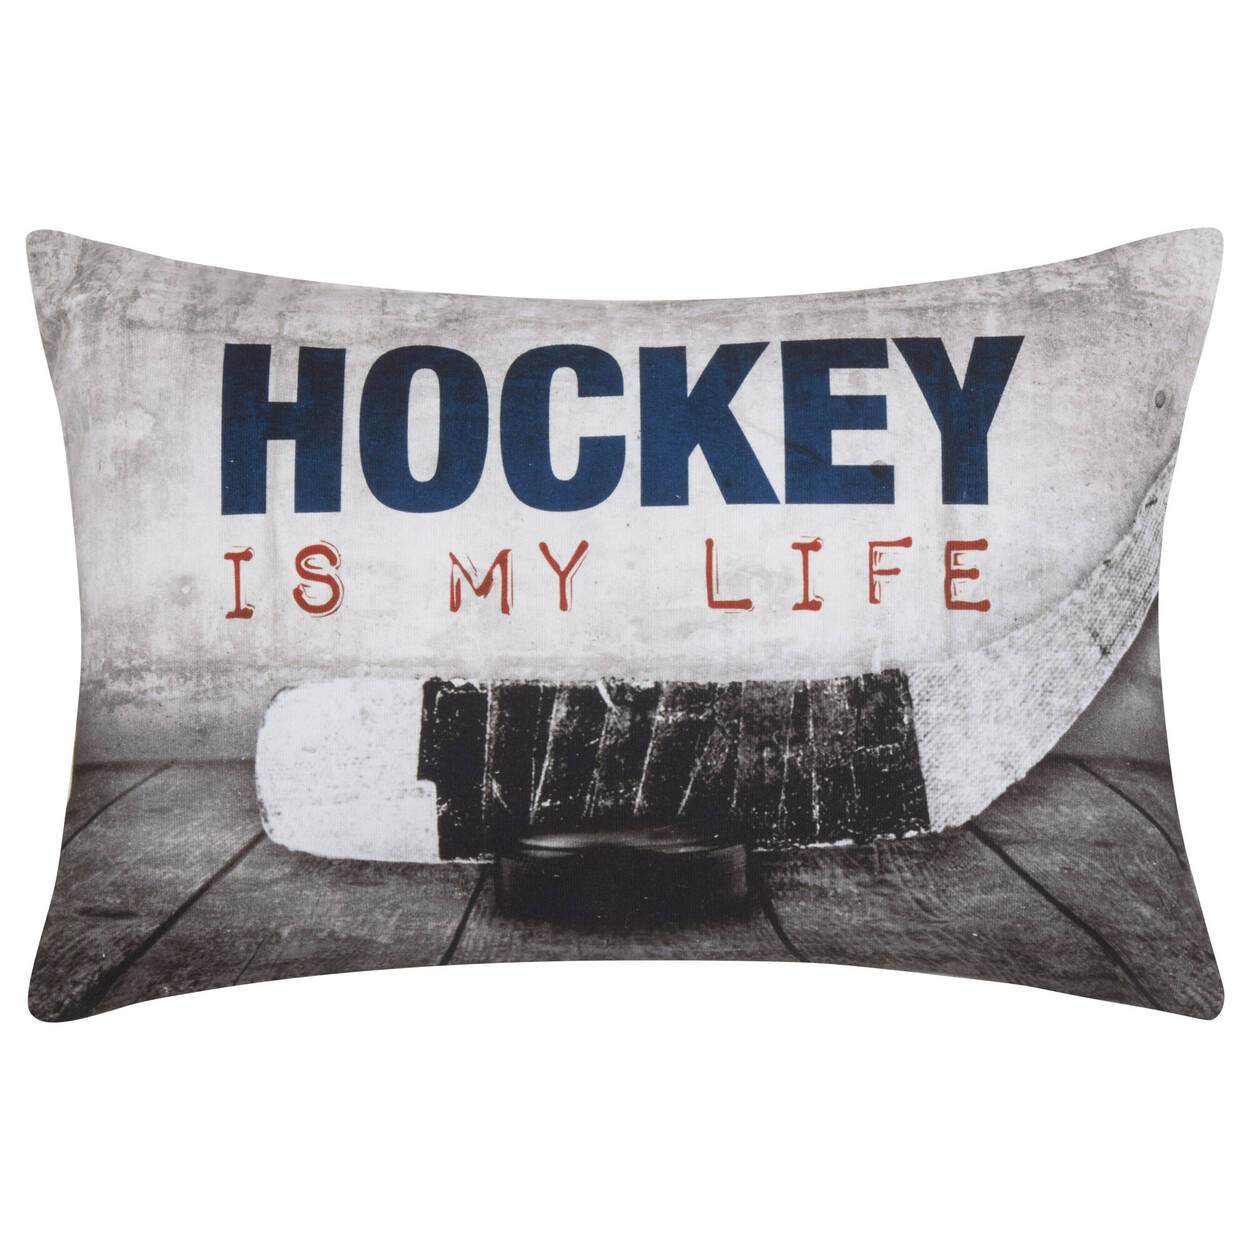 "Coussin décoratif Hockey is my life 13"" x 20"""